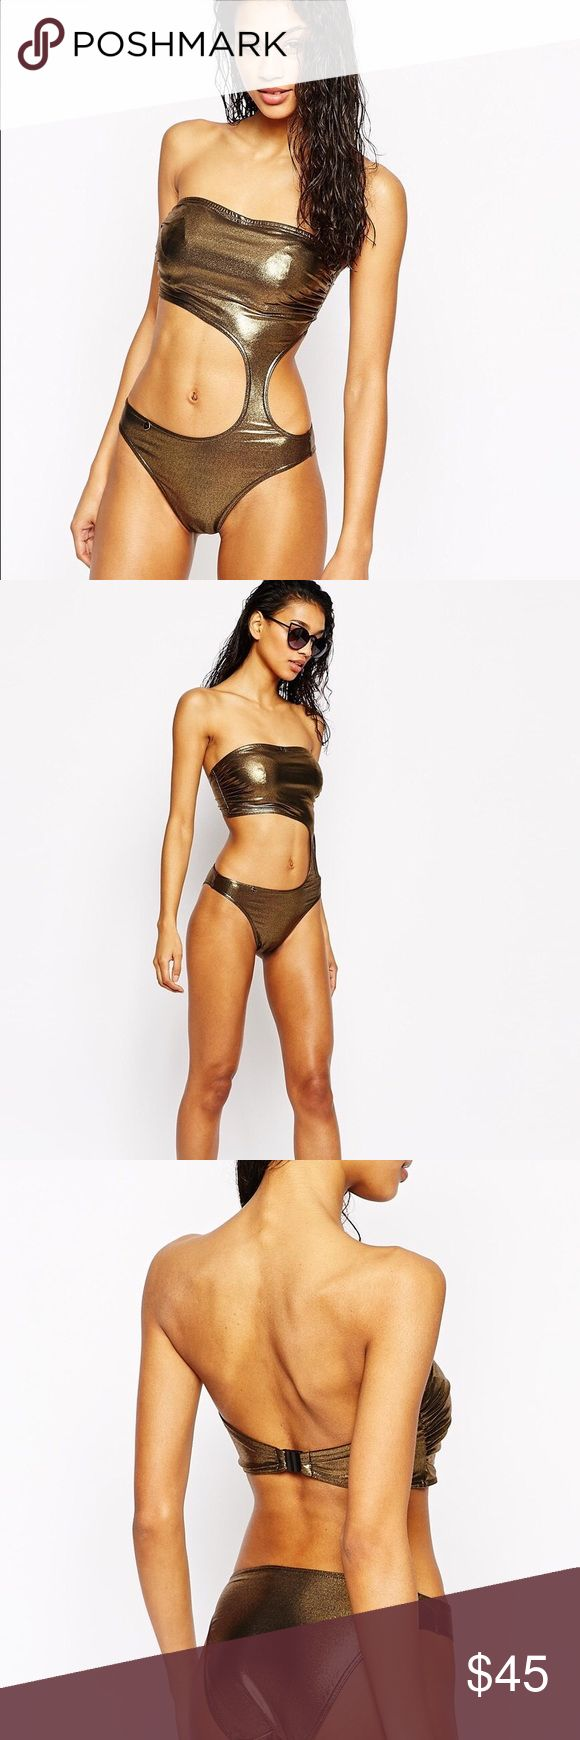 Gold rush cut out swimsuit Freya metallic cut out. Never worn. New with tags. Bra sized cup ASOS Swim